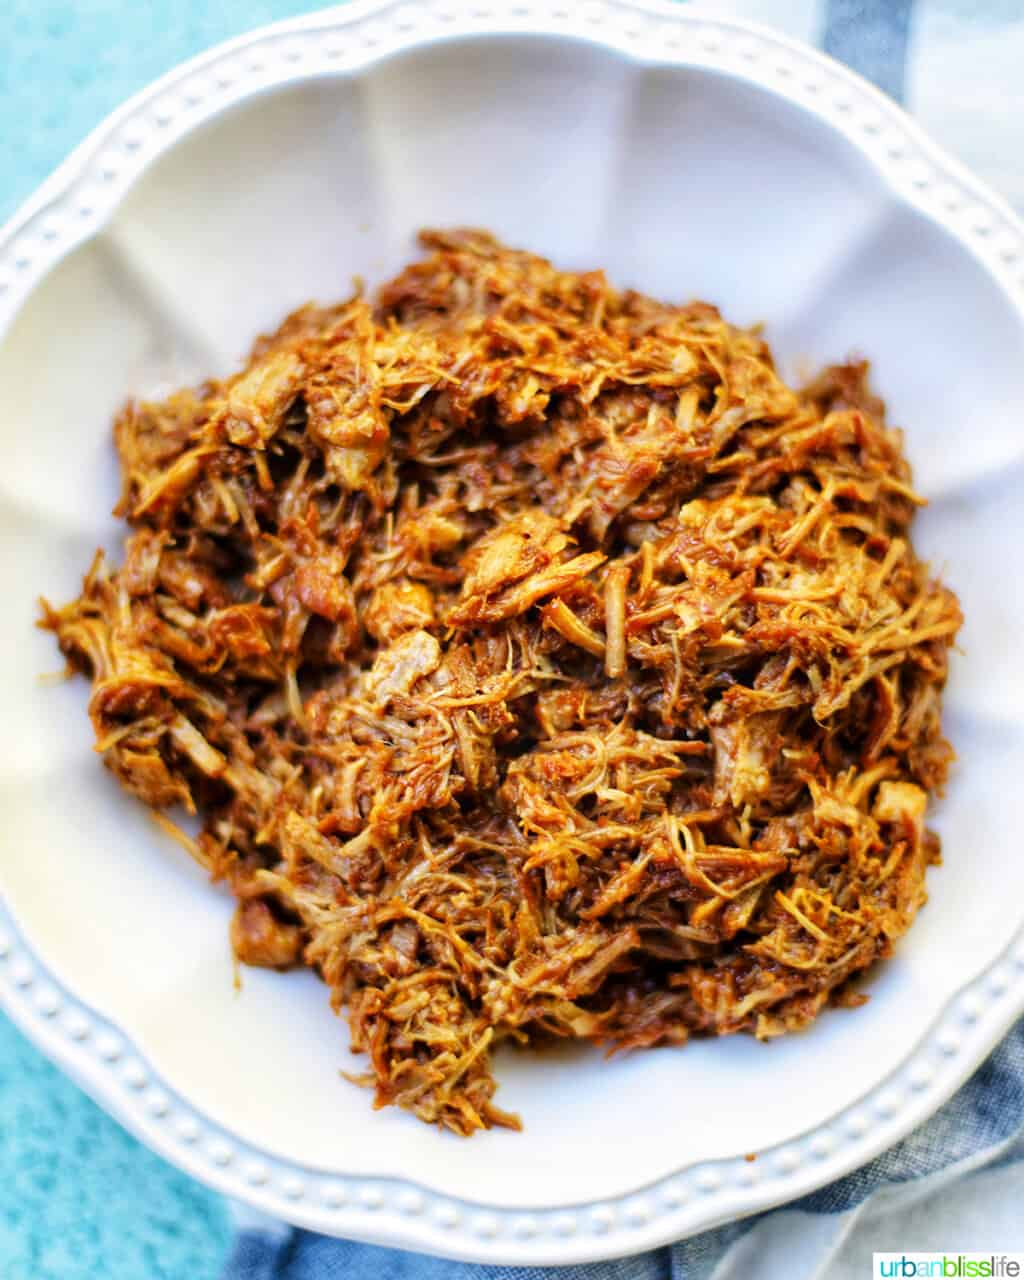 pulled pork in a white bowl